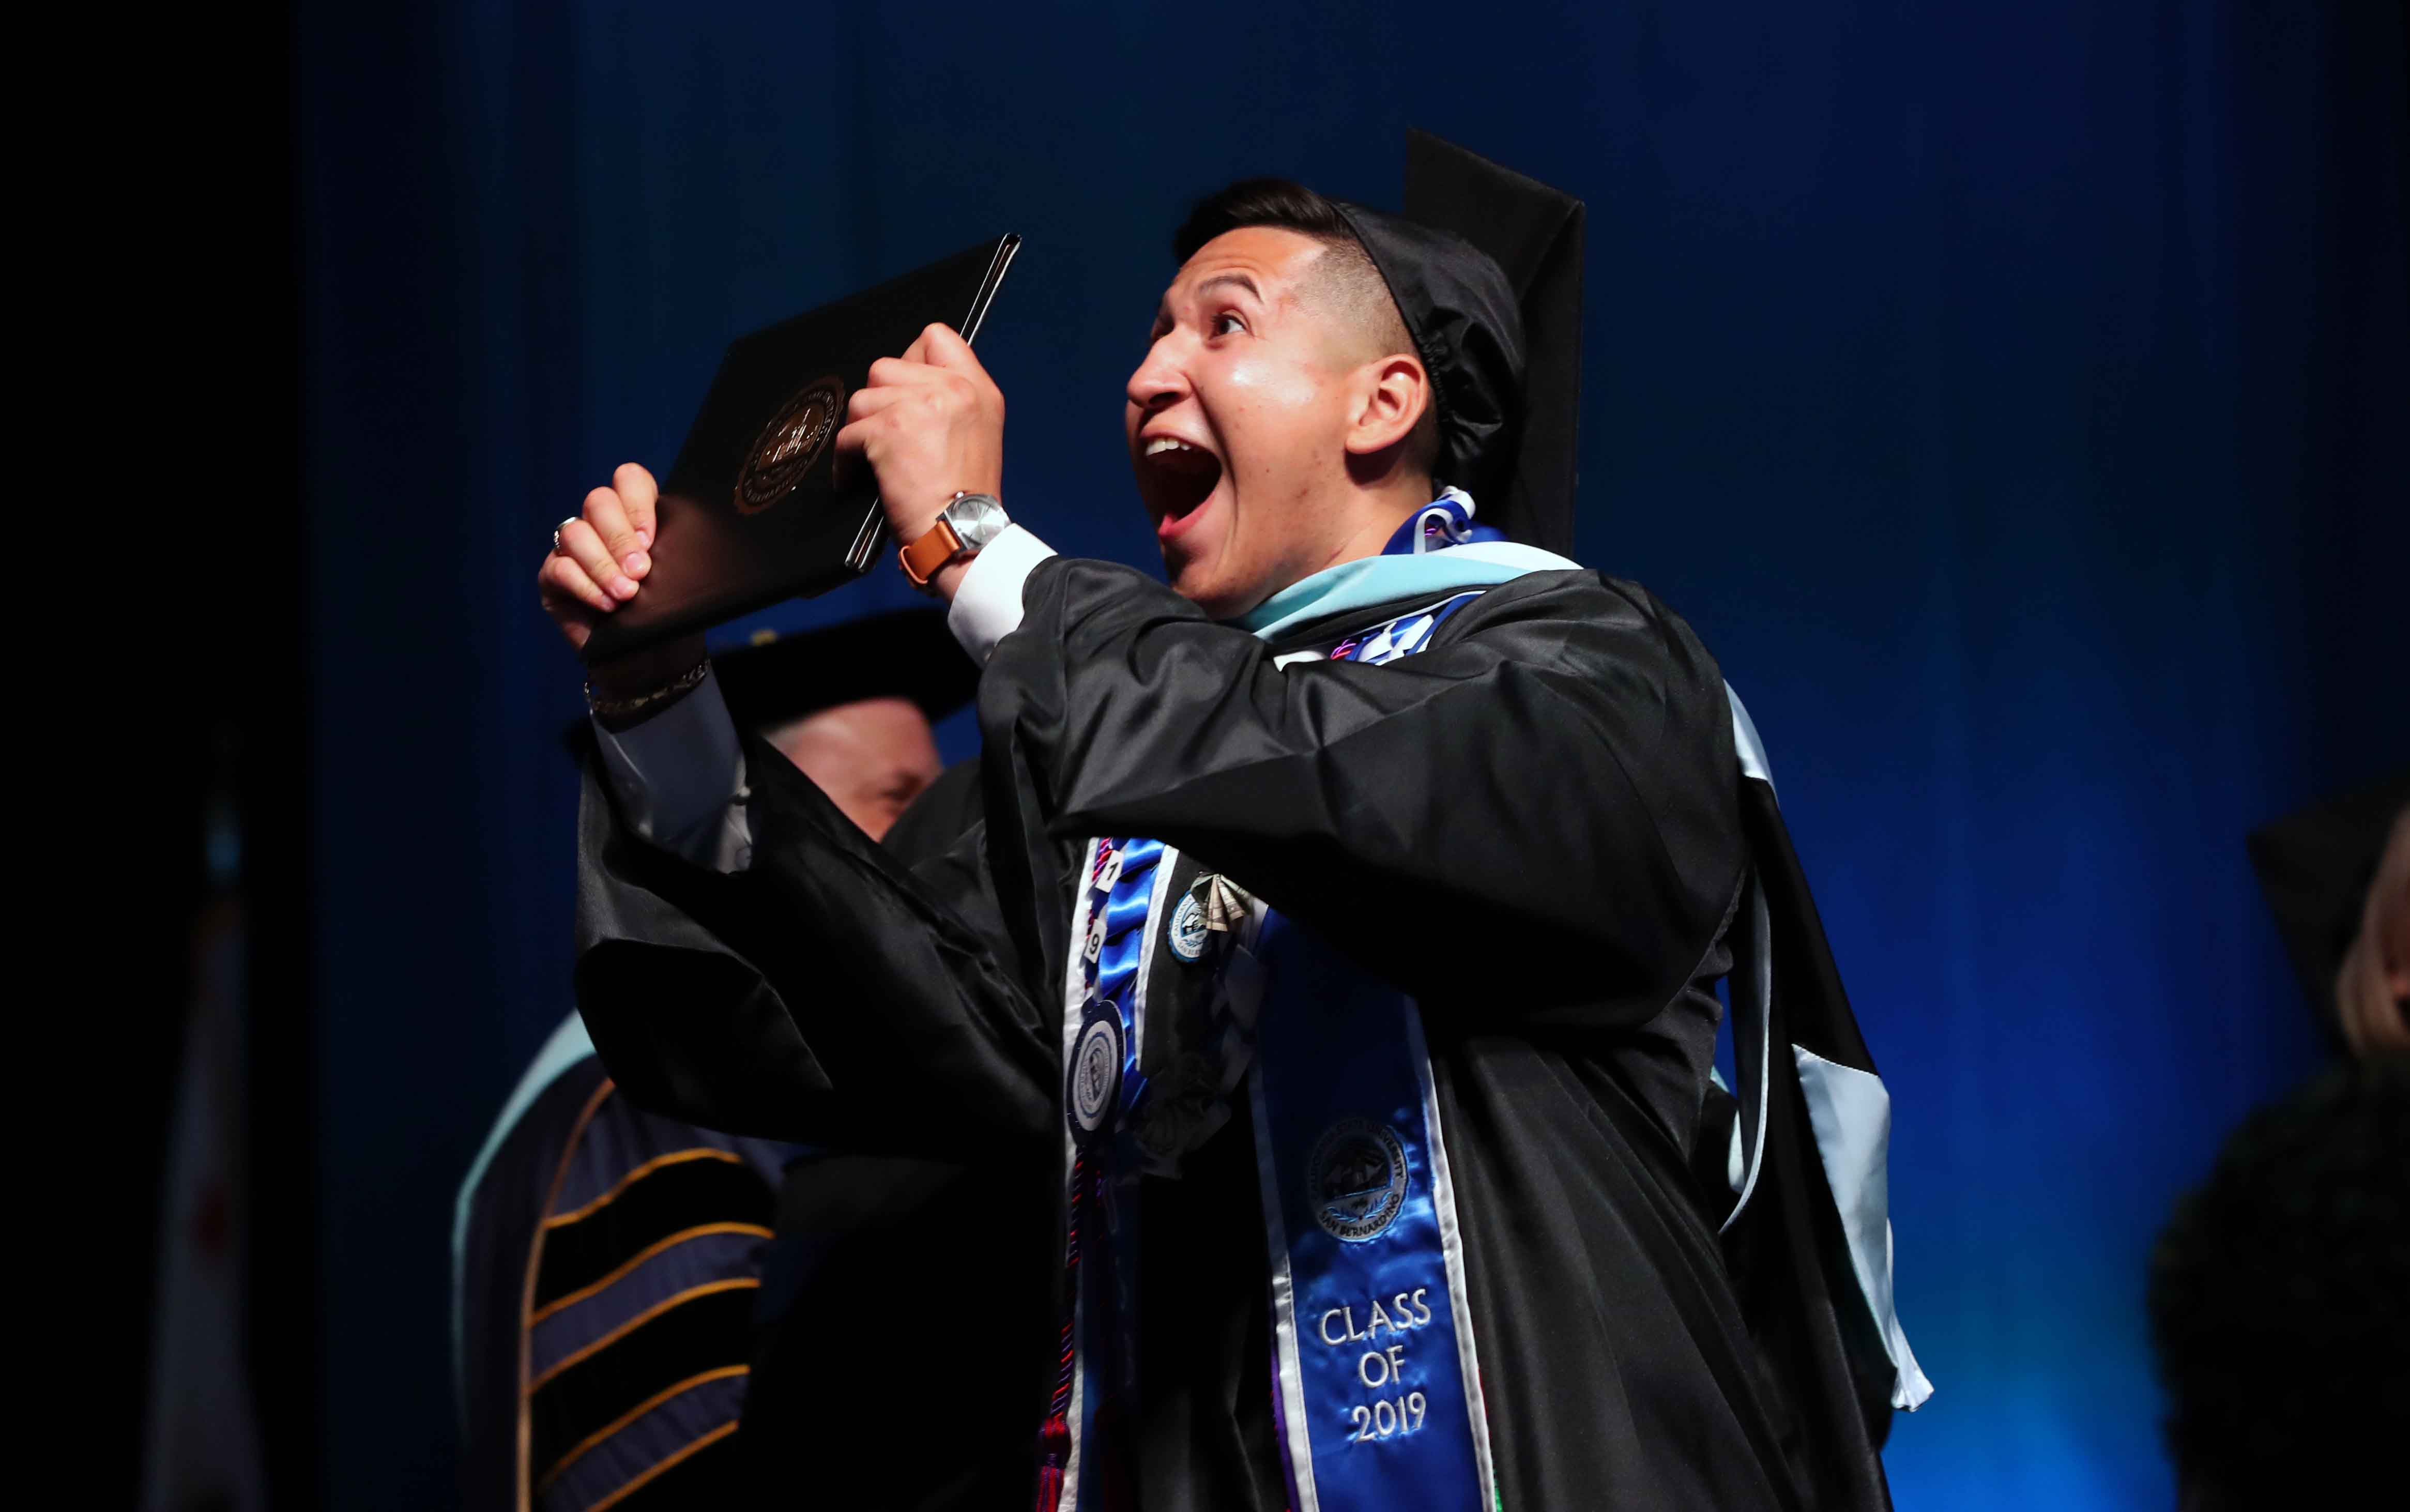 A student celebrates at one of four CSUSB commencement ceremonies at Toyota Arena